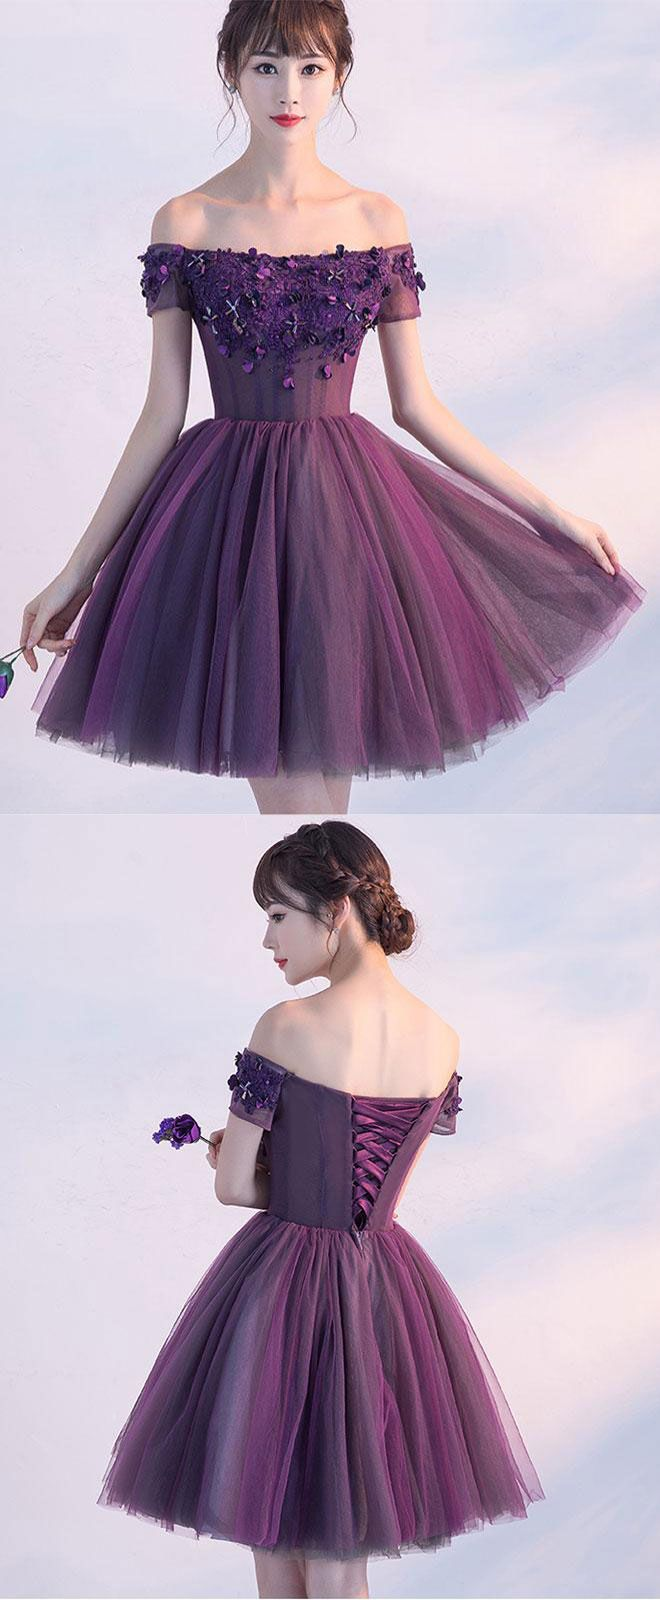 Cute a line purple off shoulder short prom dress homecoming dress